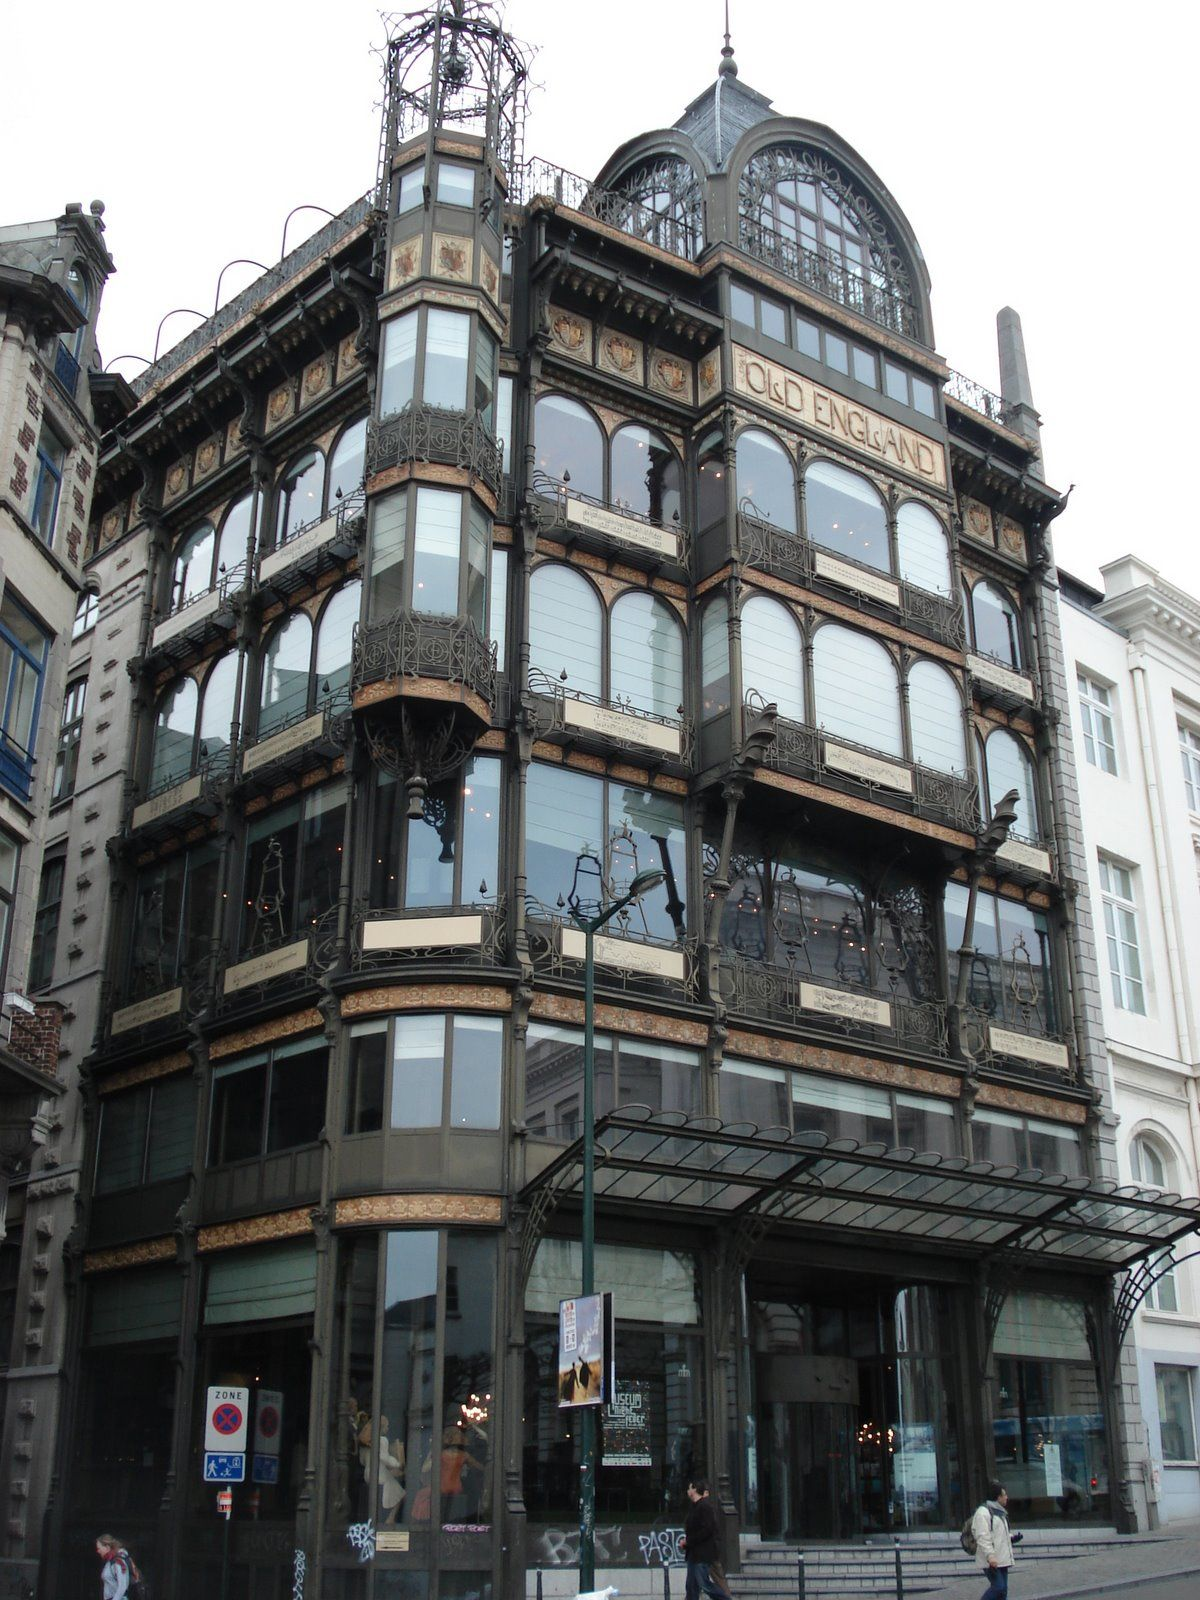 Image result for The Old England Building, Brussels